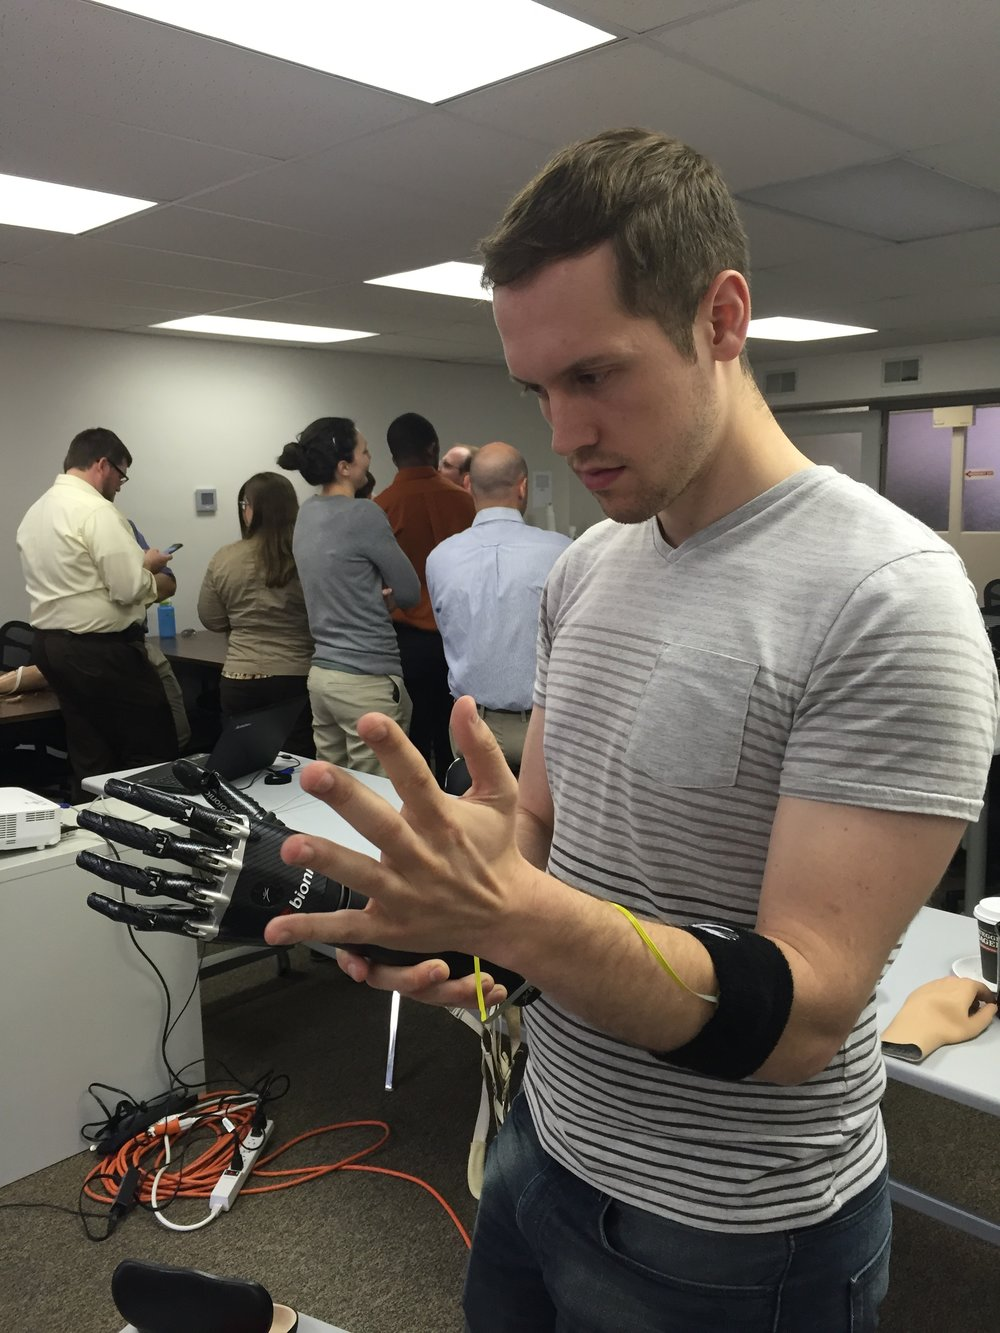 Dan Arnett - Researcher and Teaching Assistant at Carnegie Mellon University Robotics Institute